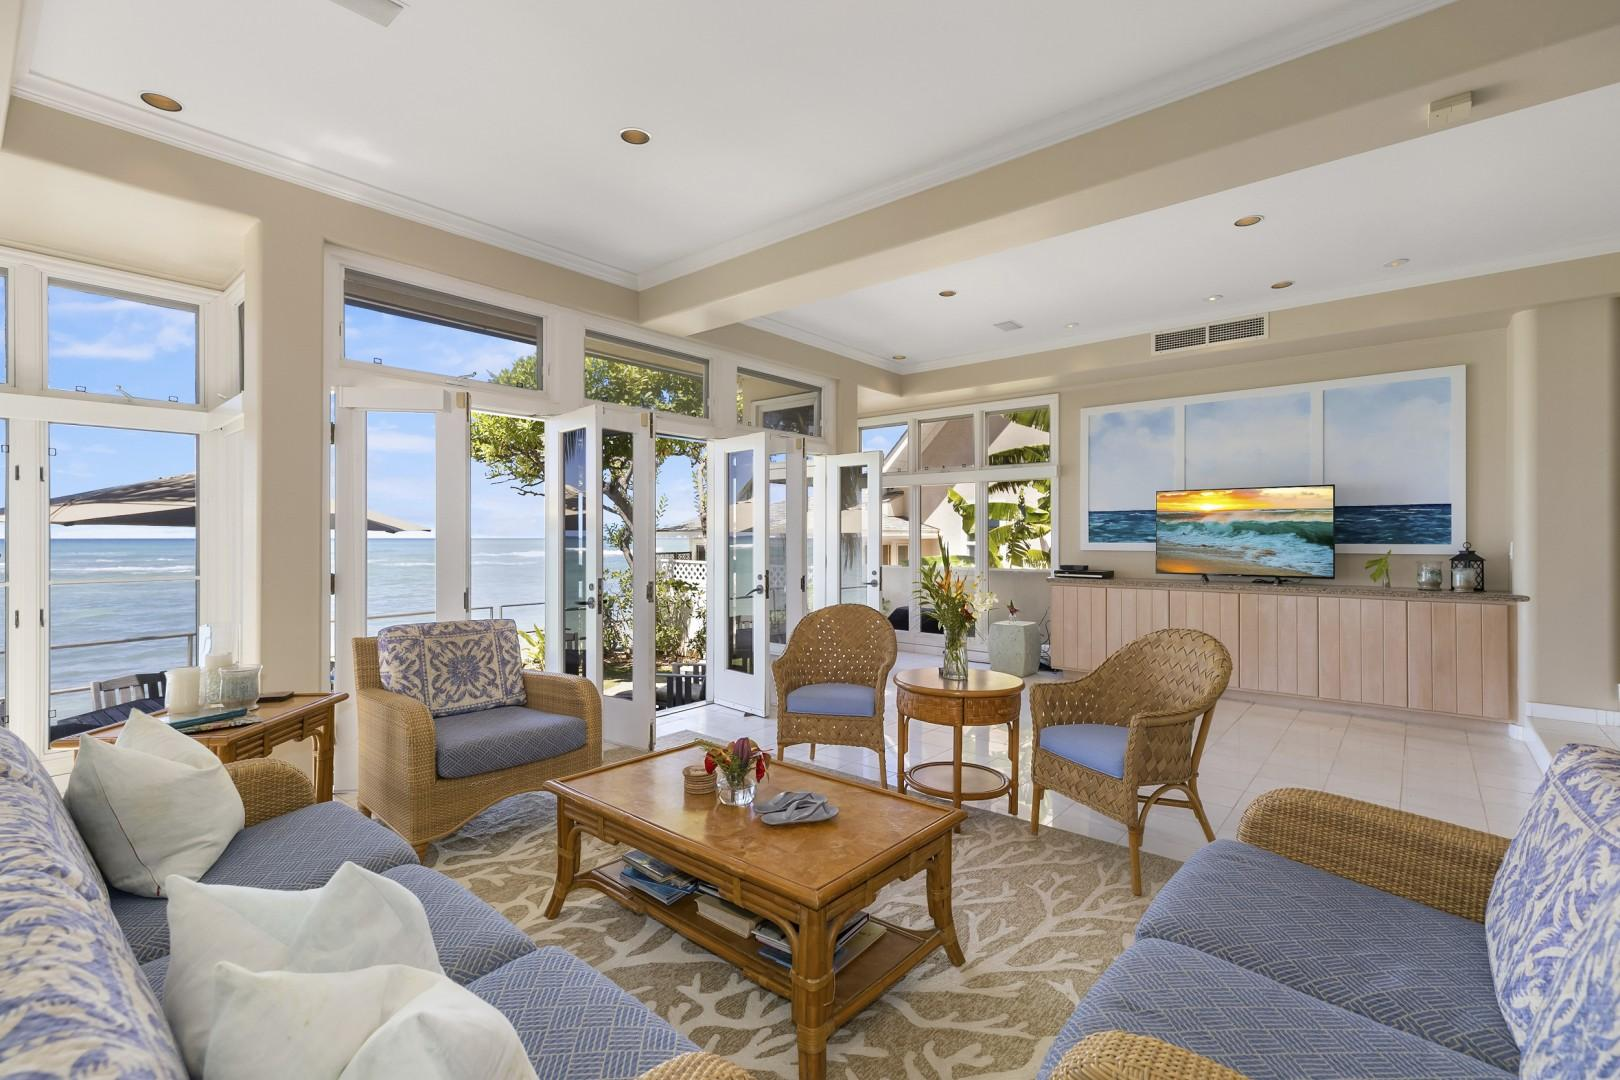 Living Room area, looking makai (toward the ocean)